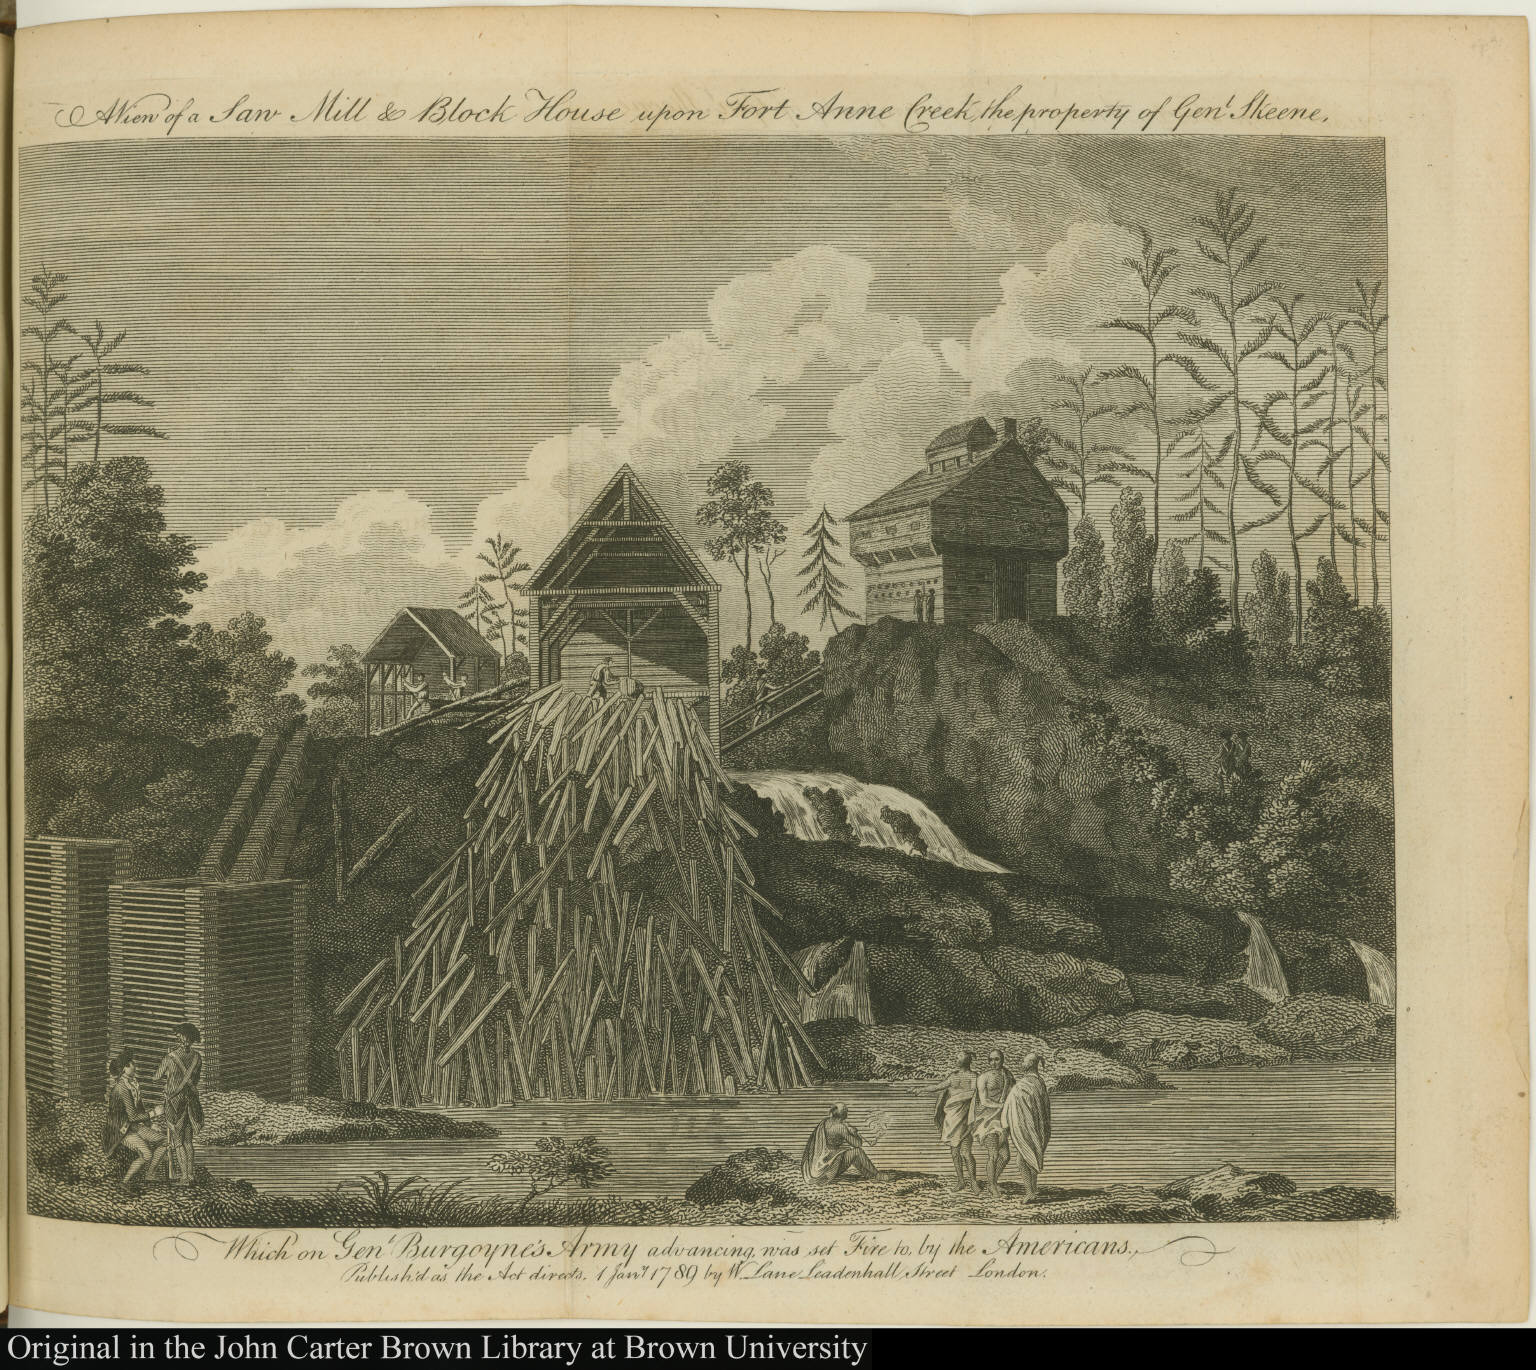 A View of a Saw Mill & Block House upon Fort Anne Creek, the property of Genl. Skeene. ...